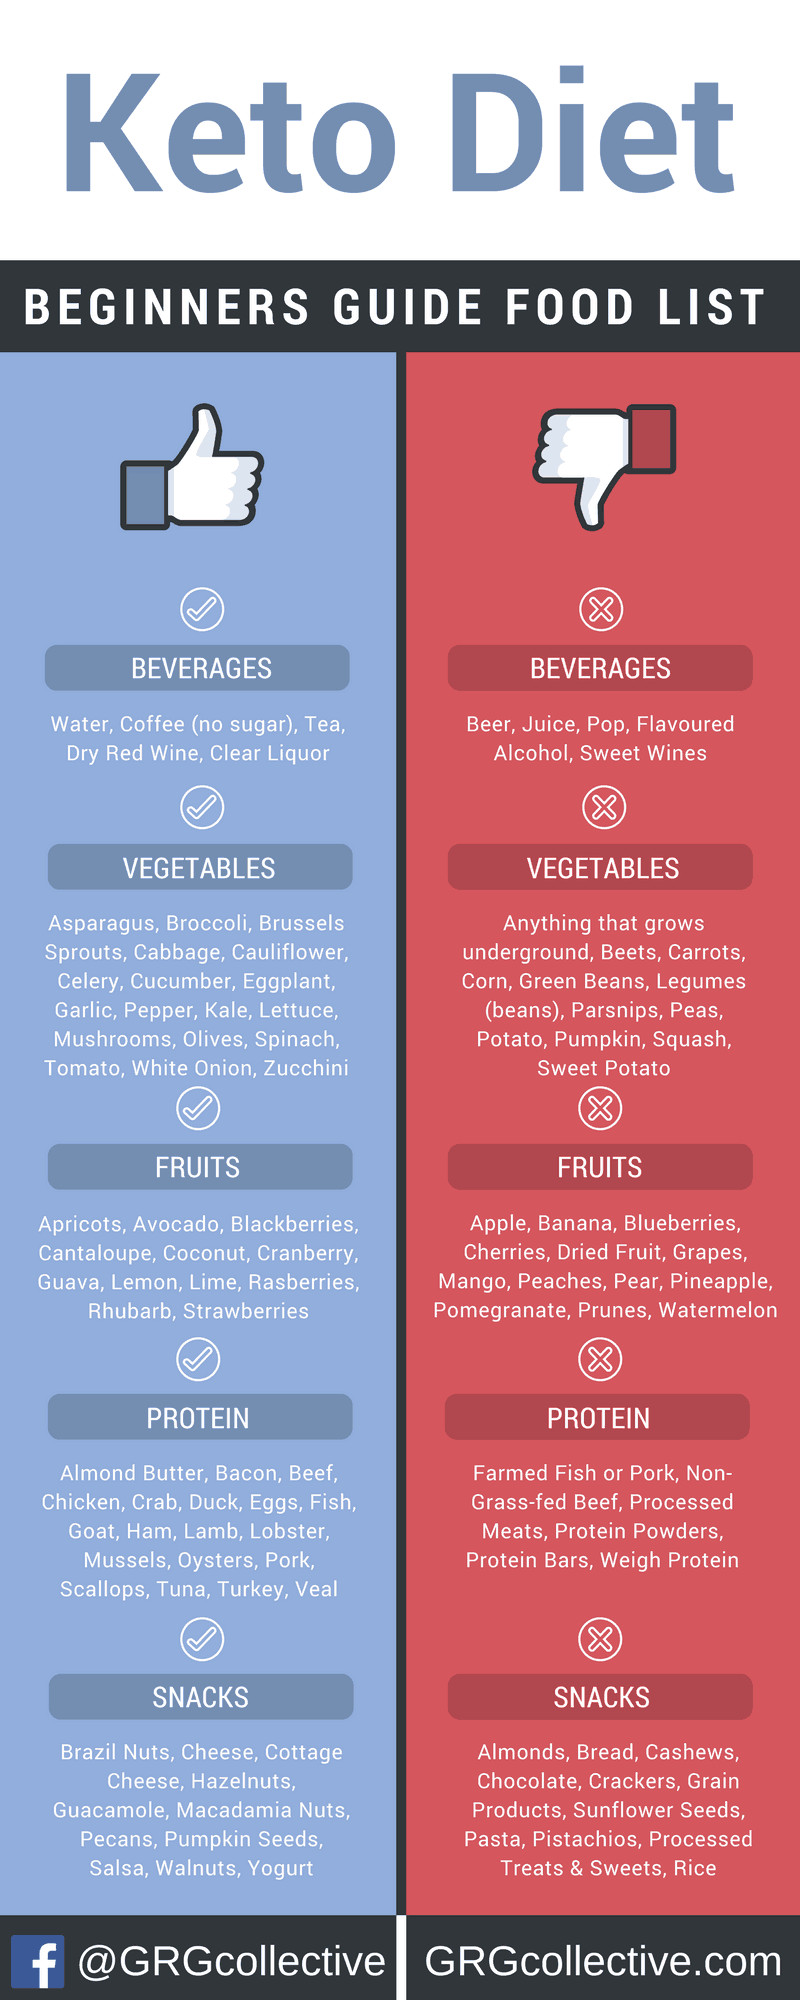 How To Keto Diet For Beginners  Infographic The Ultimate Keto Food List for Beginners